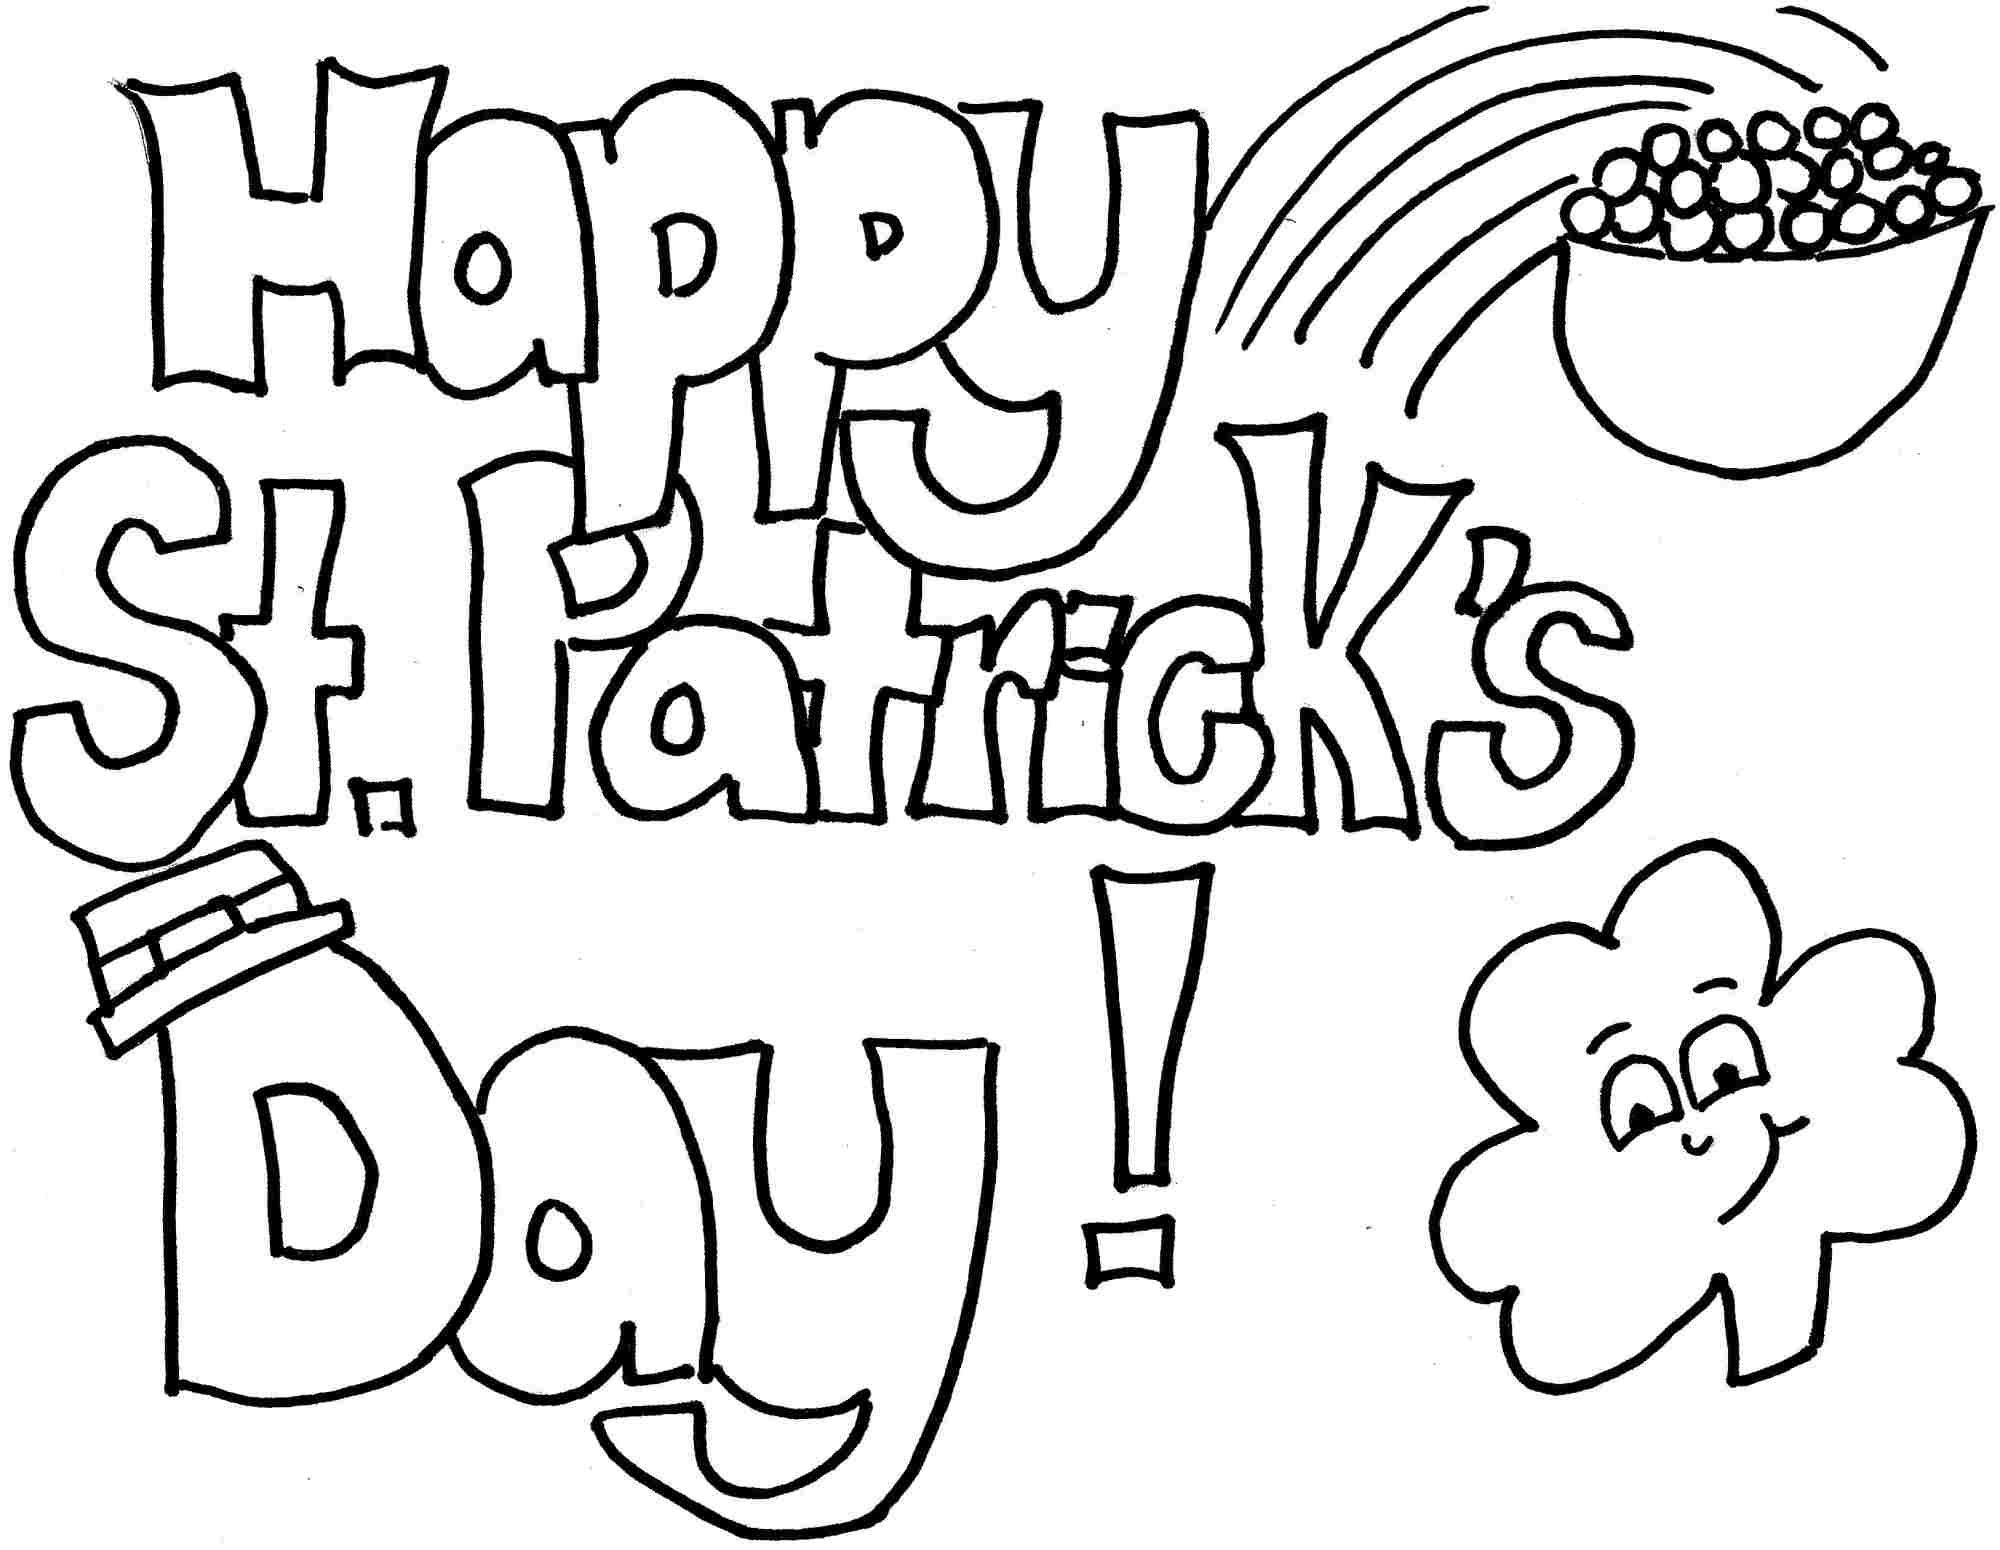 Coloring Pages St Pattys Day Coloring Pages 1000 images about coloring pages on pinterest saint patricks day activities and pages